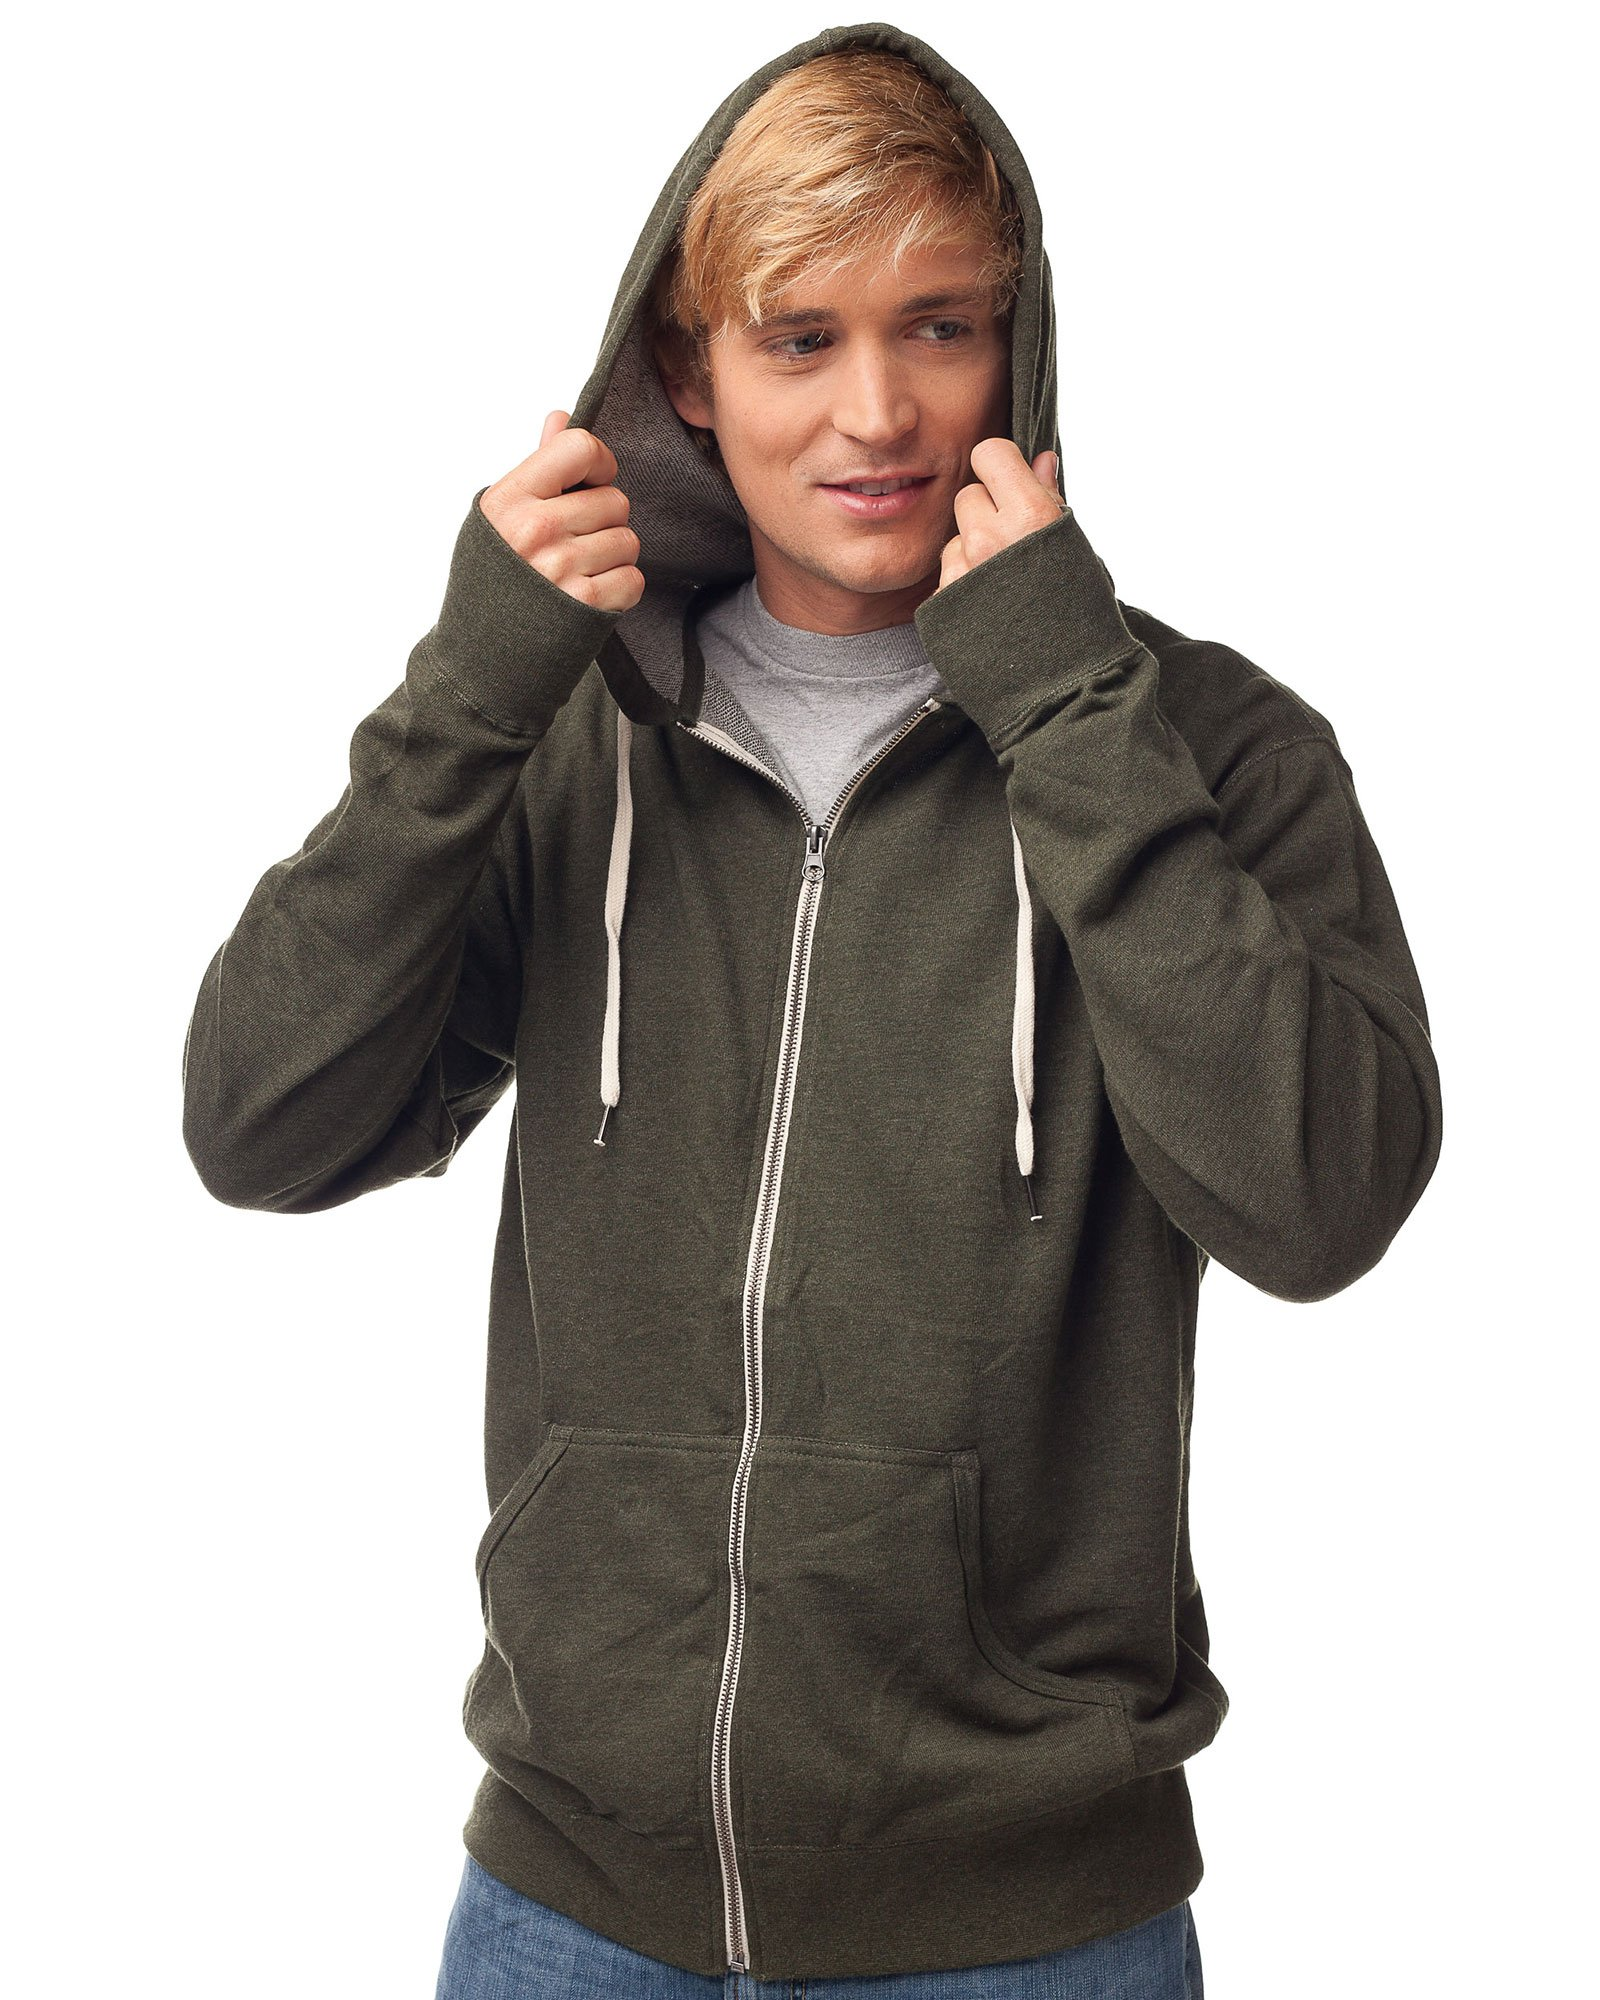 Global Blank Slim Fit French Terry Lightweight Zip Up Hoodie for Men and Women XS Dark Green